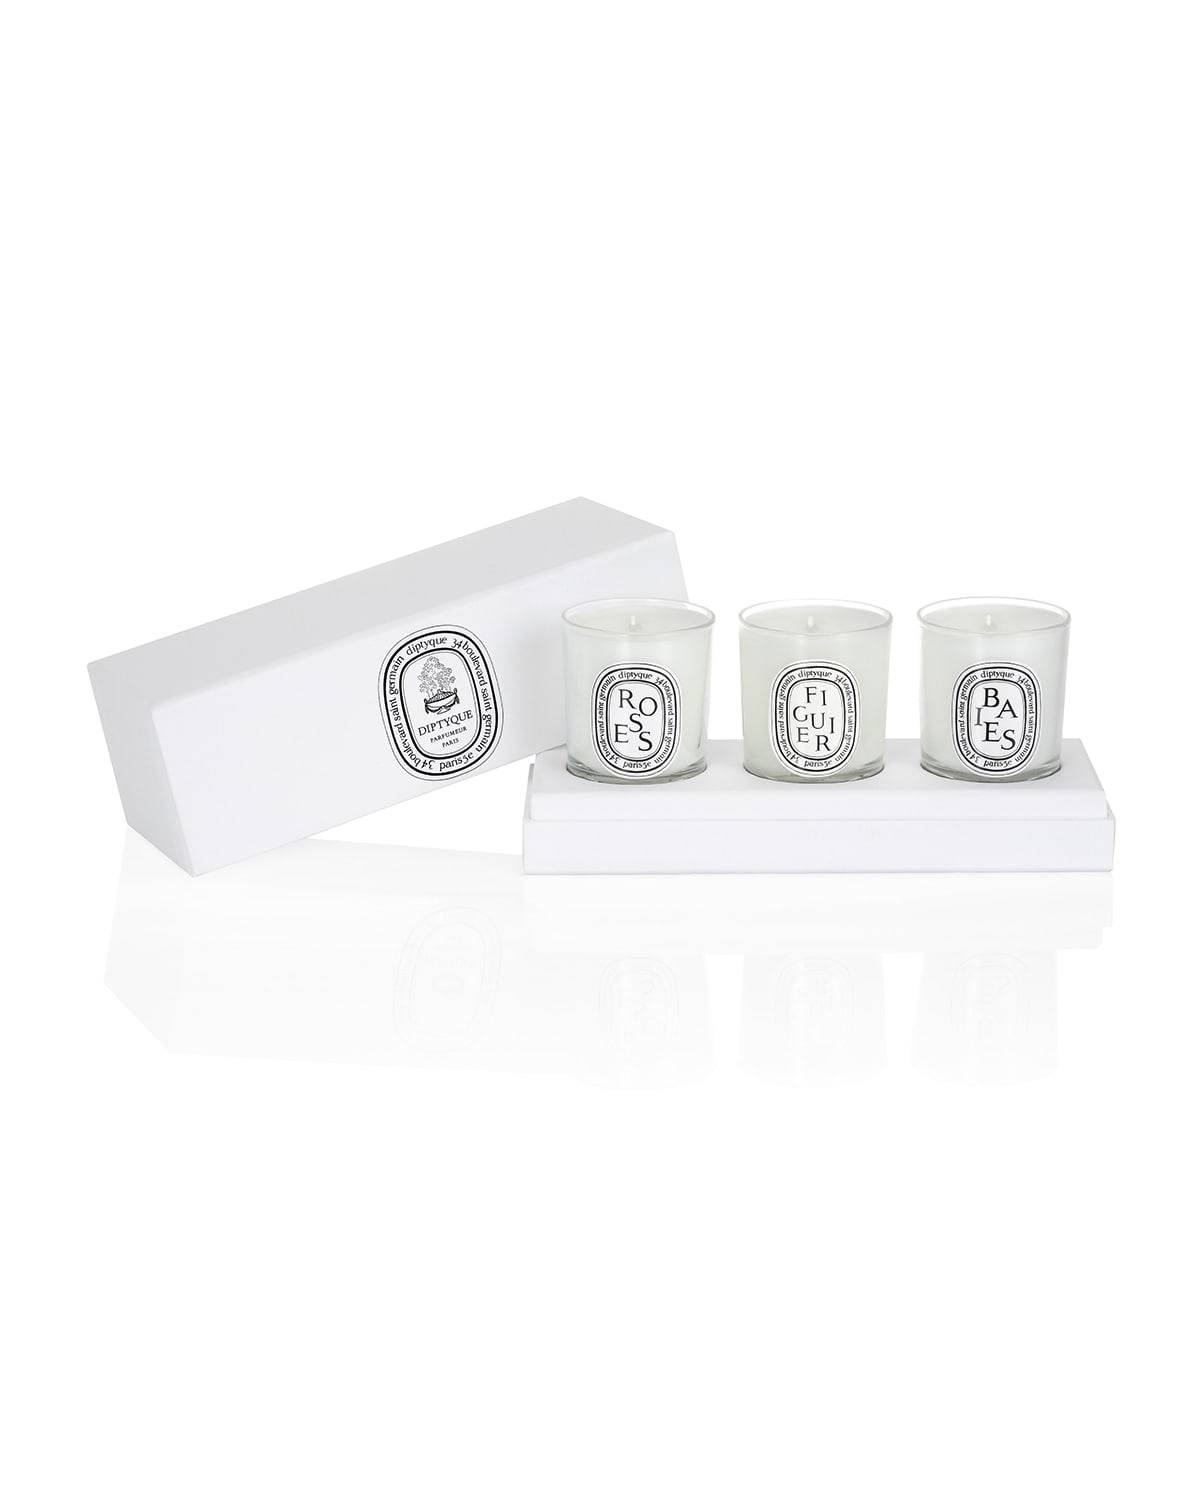 Mini Candle Set - Baies, Figuier, & Roses - UNASSIGNED